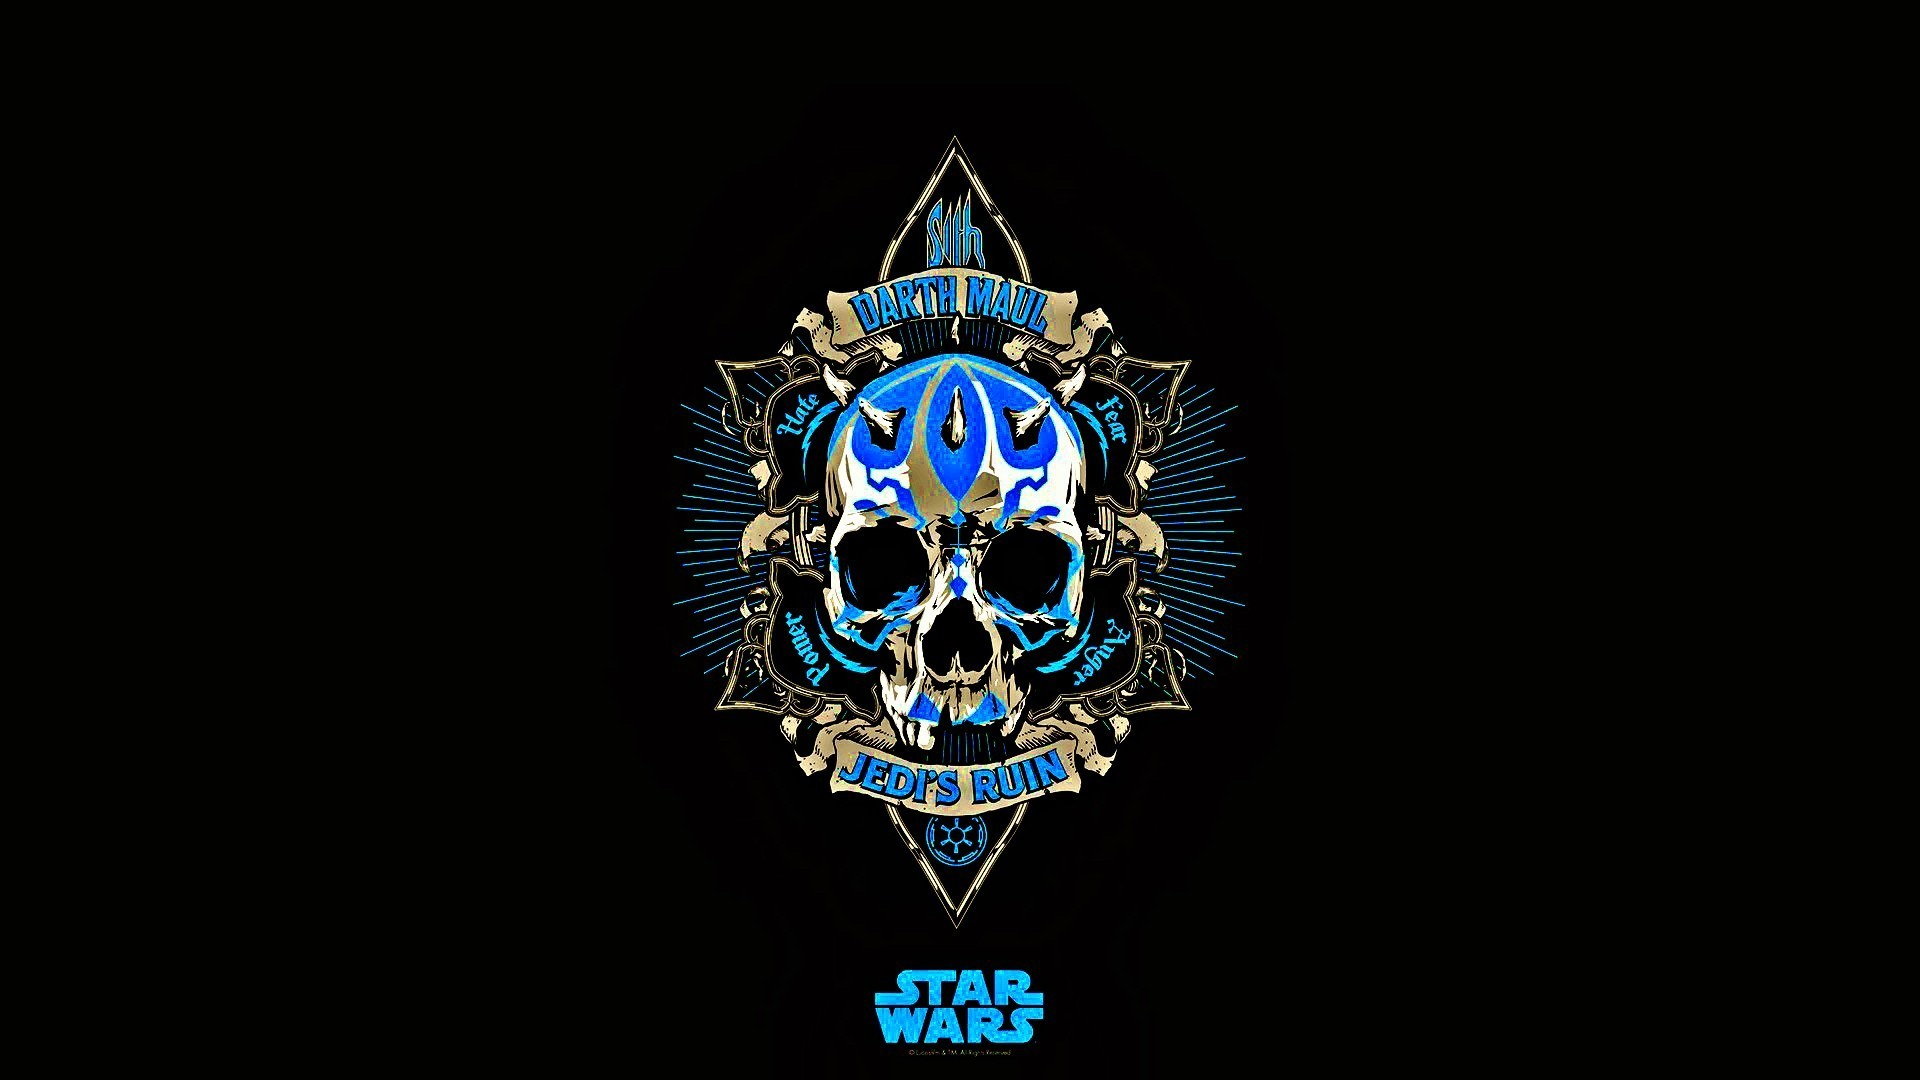 1920x1080 Star Wars, Jedi, Skull, Blue, Black, Darth Maul, Minimalism Wallpapers HD /  Desktop and Mobile Backgrounds